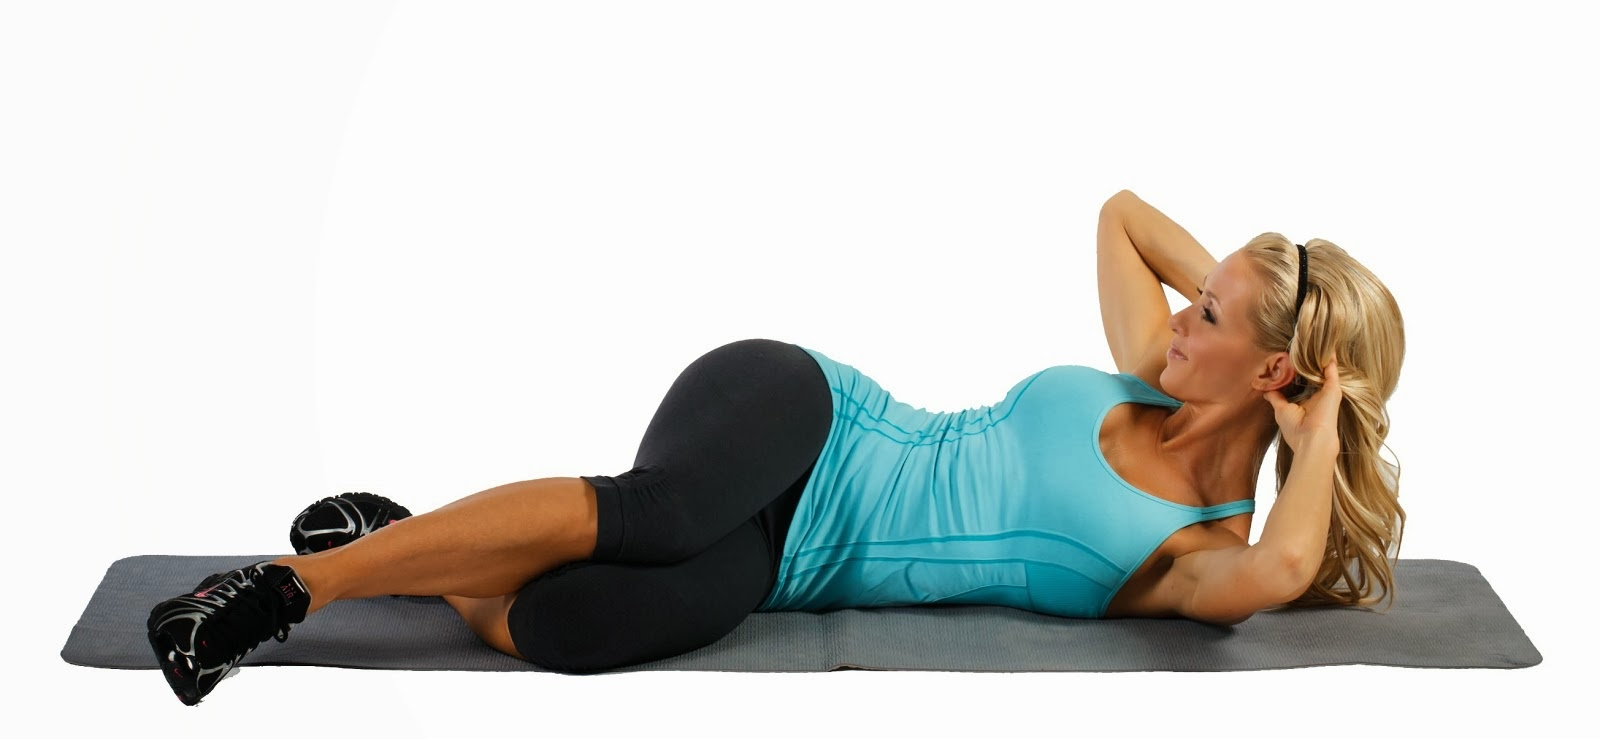 Get A 6-Pack In Six Minutes With These Six Exercises 3